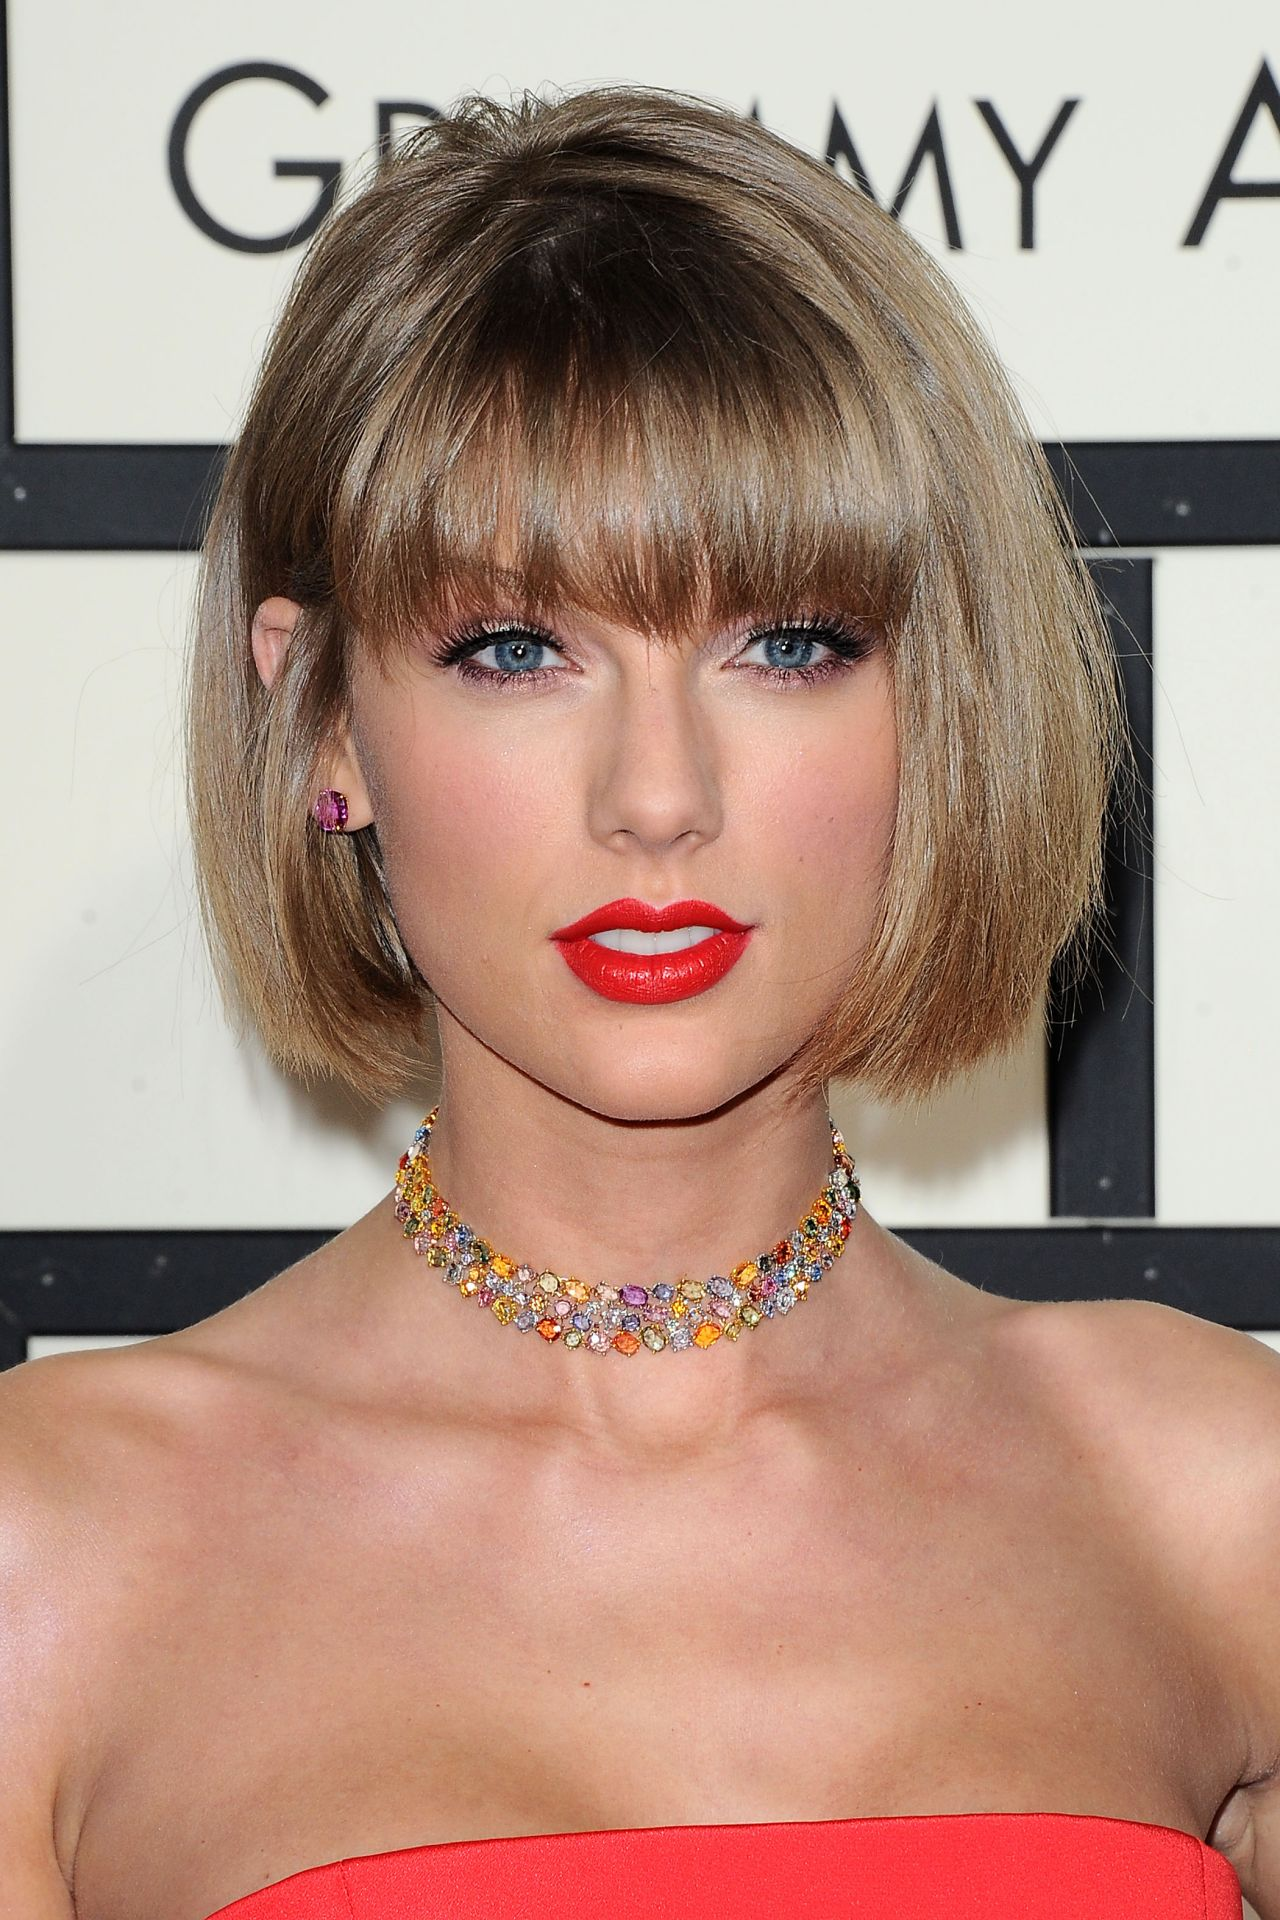 Taylor Swift - 2016 Grammy Awards in Los Angeles, CA Taylor Swift